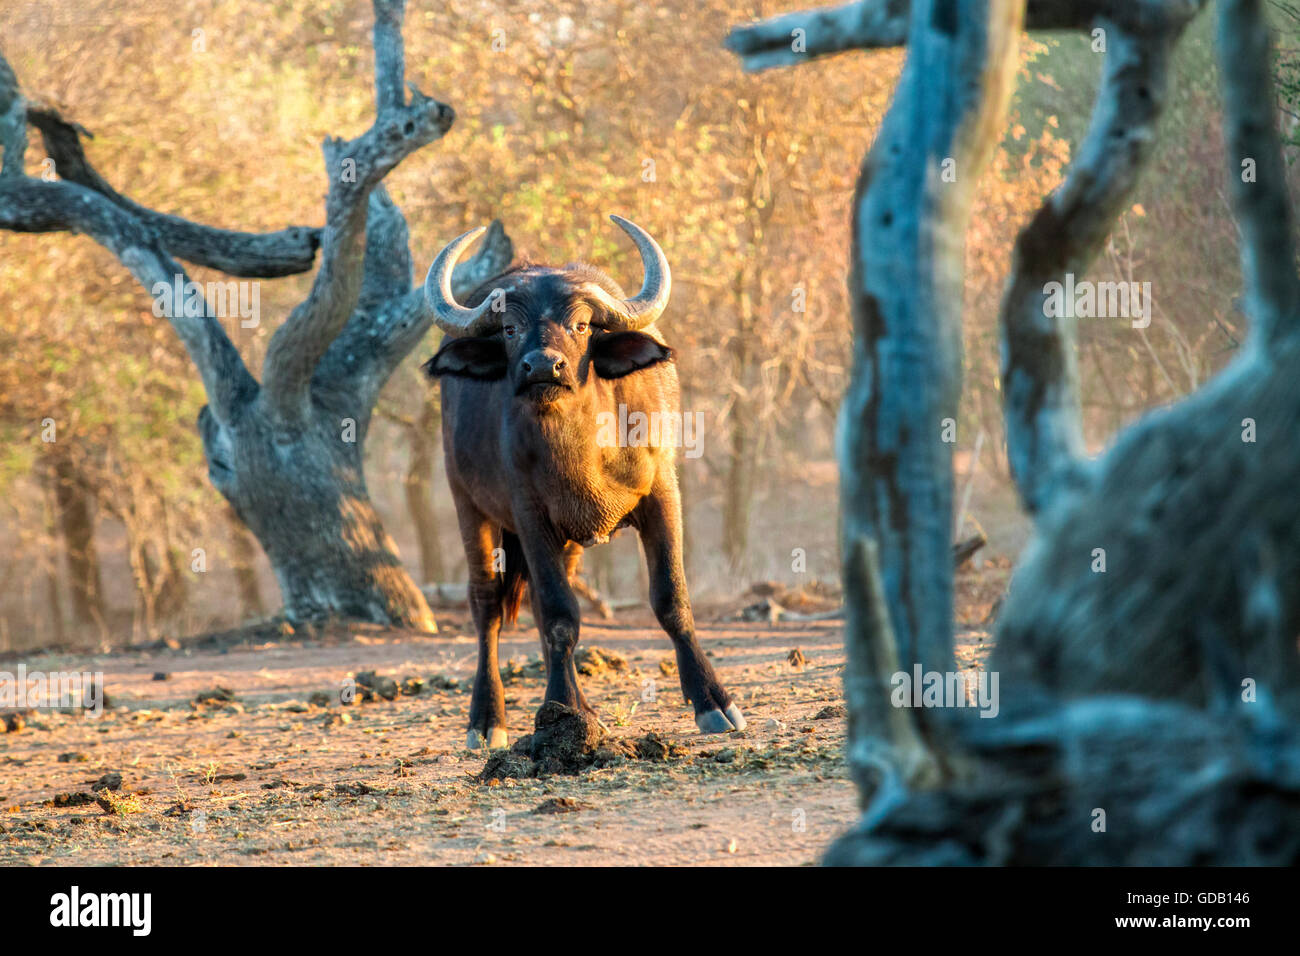 South africa game drive in the early morning. Curious buffalo between gnarled trees watches the viewer. - Stock Image